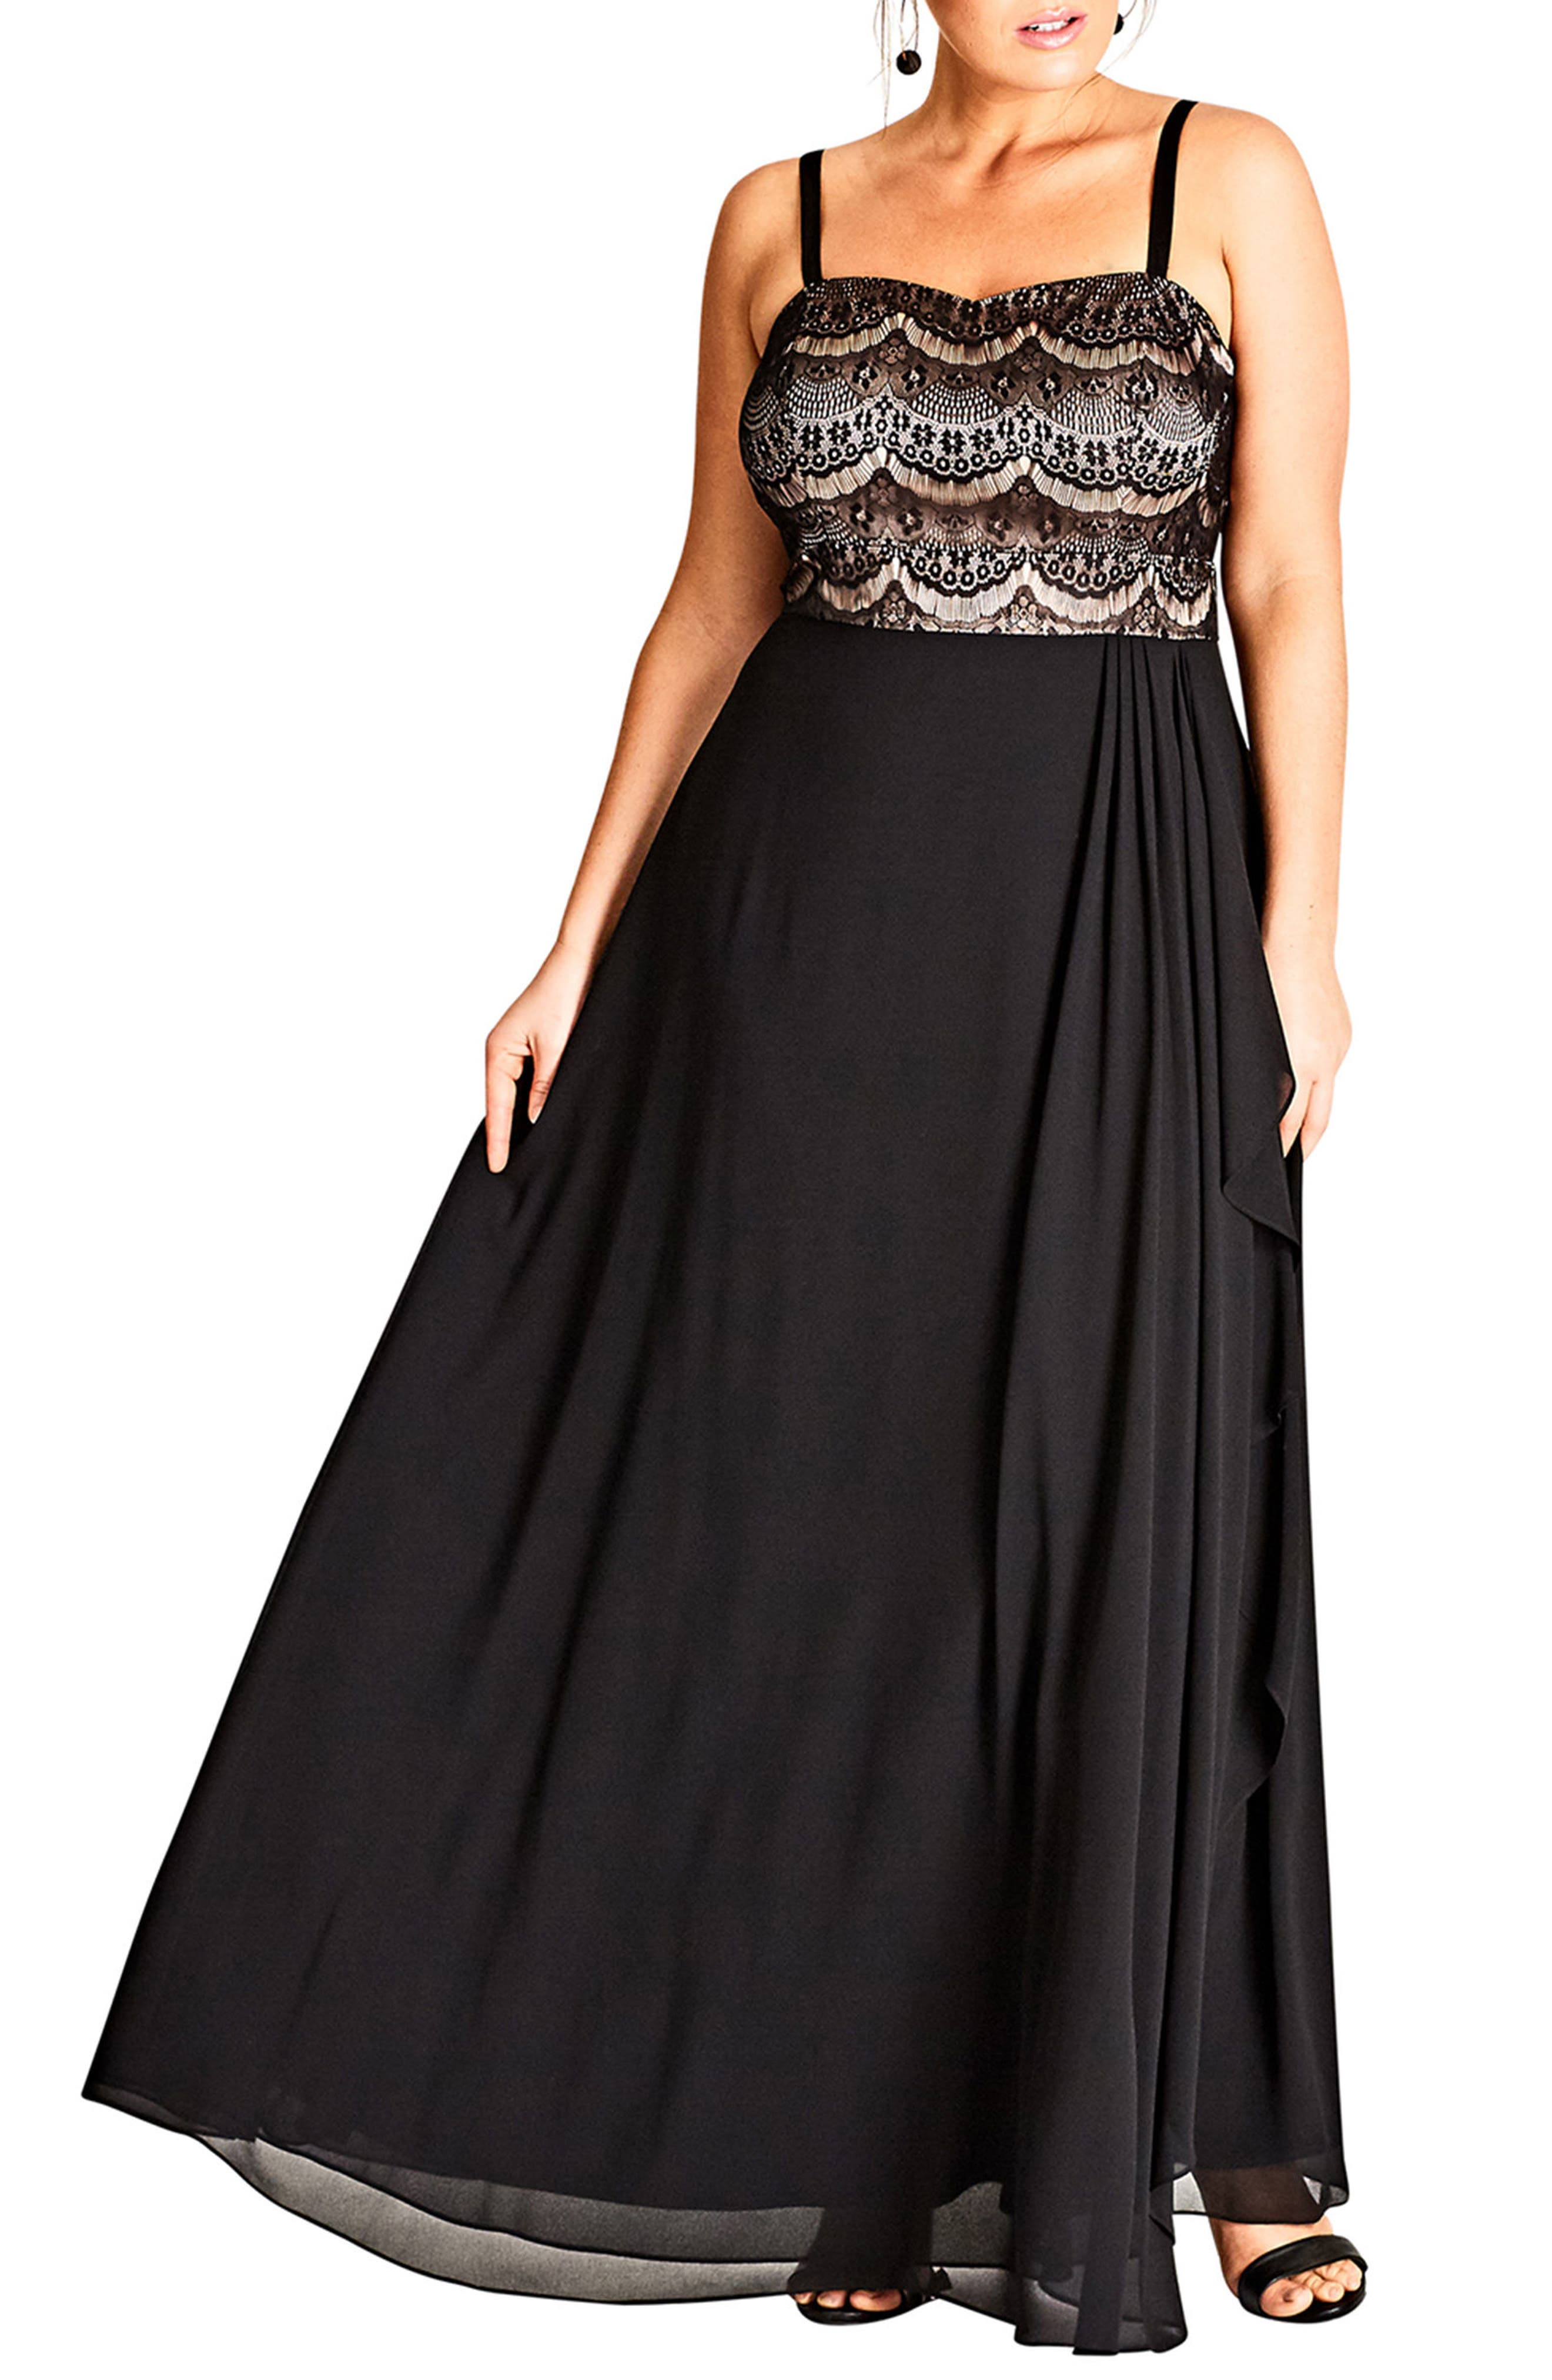 Plus Size City Chic Eyelash Ebony Lace & Chiffon Gown, Black